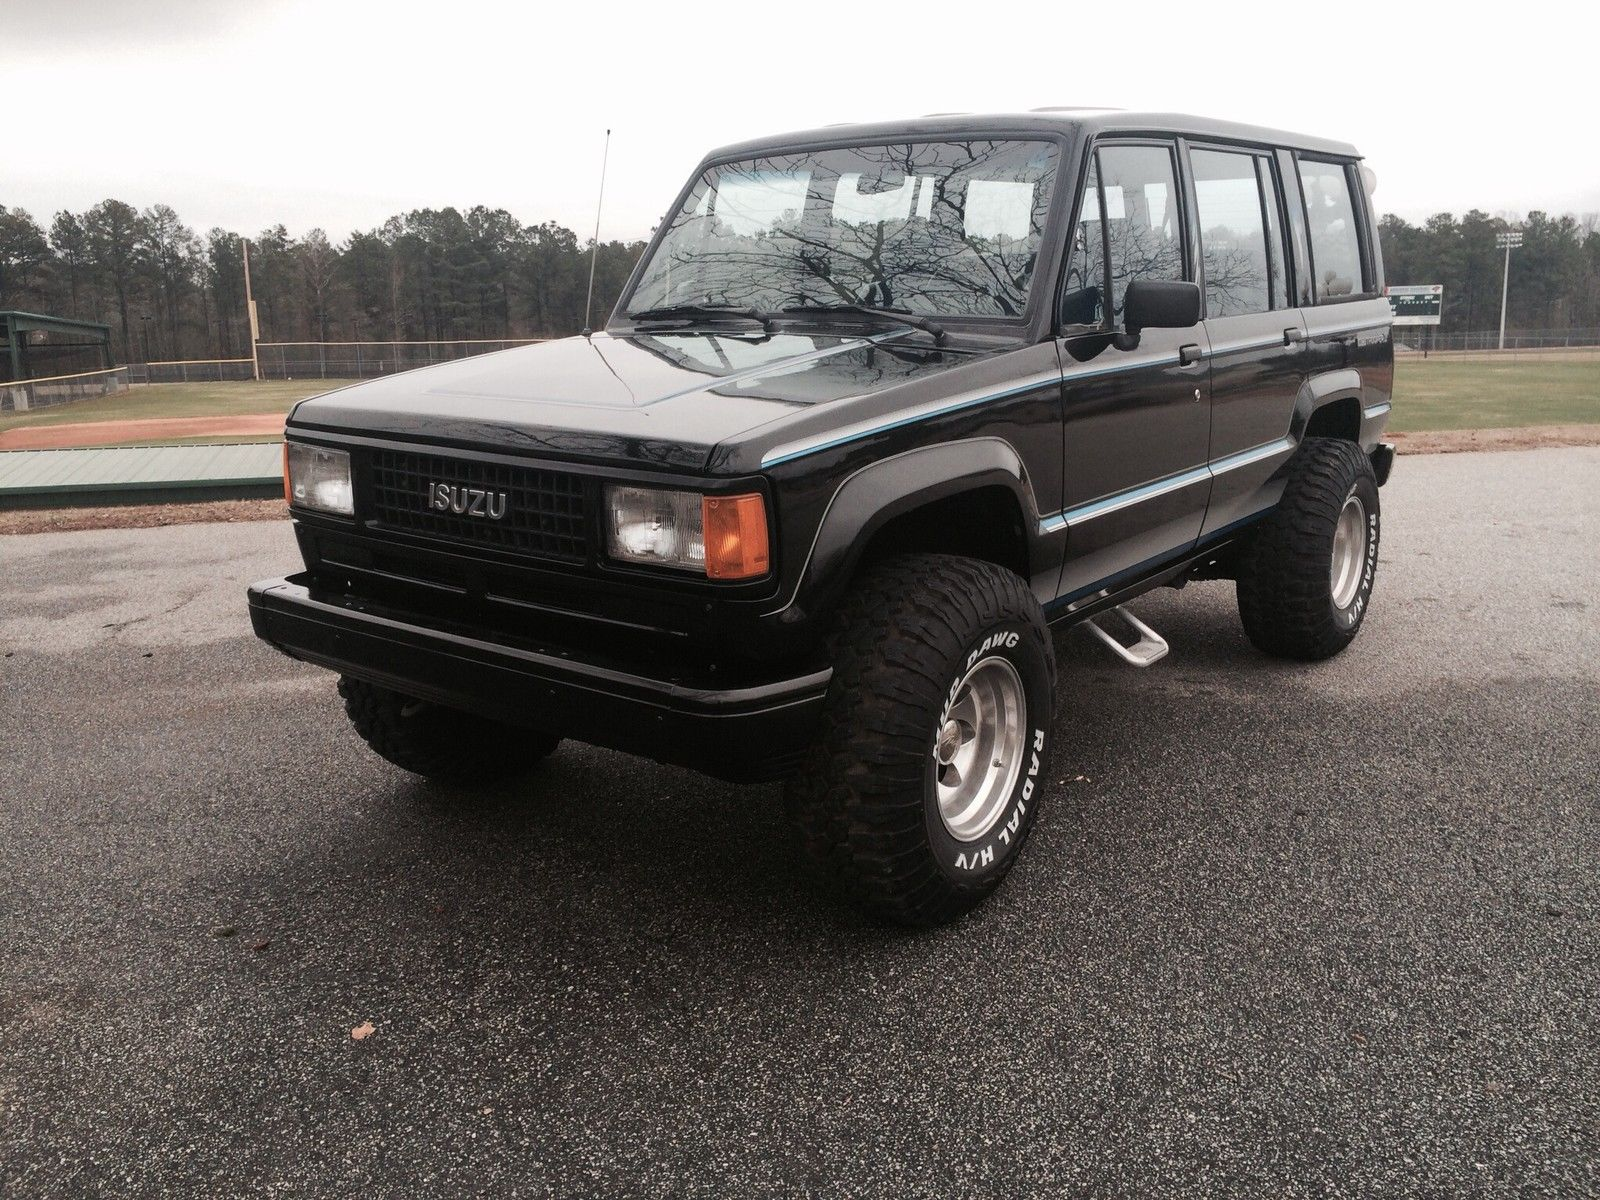 Cars For Sale Newnan Ga 2000: 1991 Isuzu Trooper 4 Wheel Drive 57,500 Original Southern